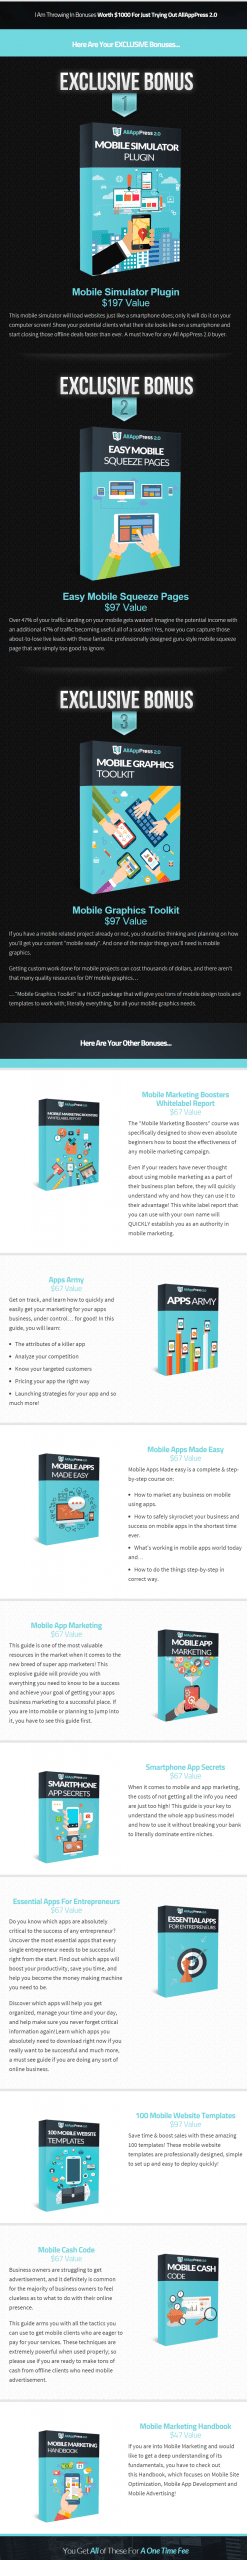 All App Press 2.0 bonus